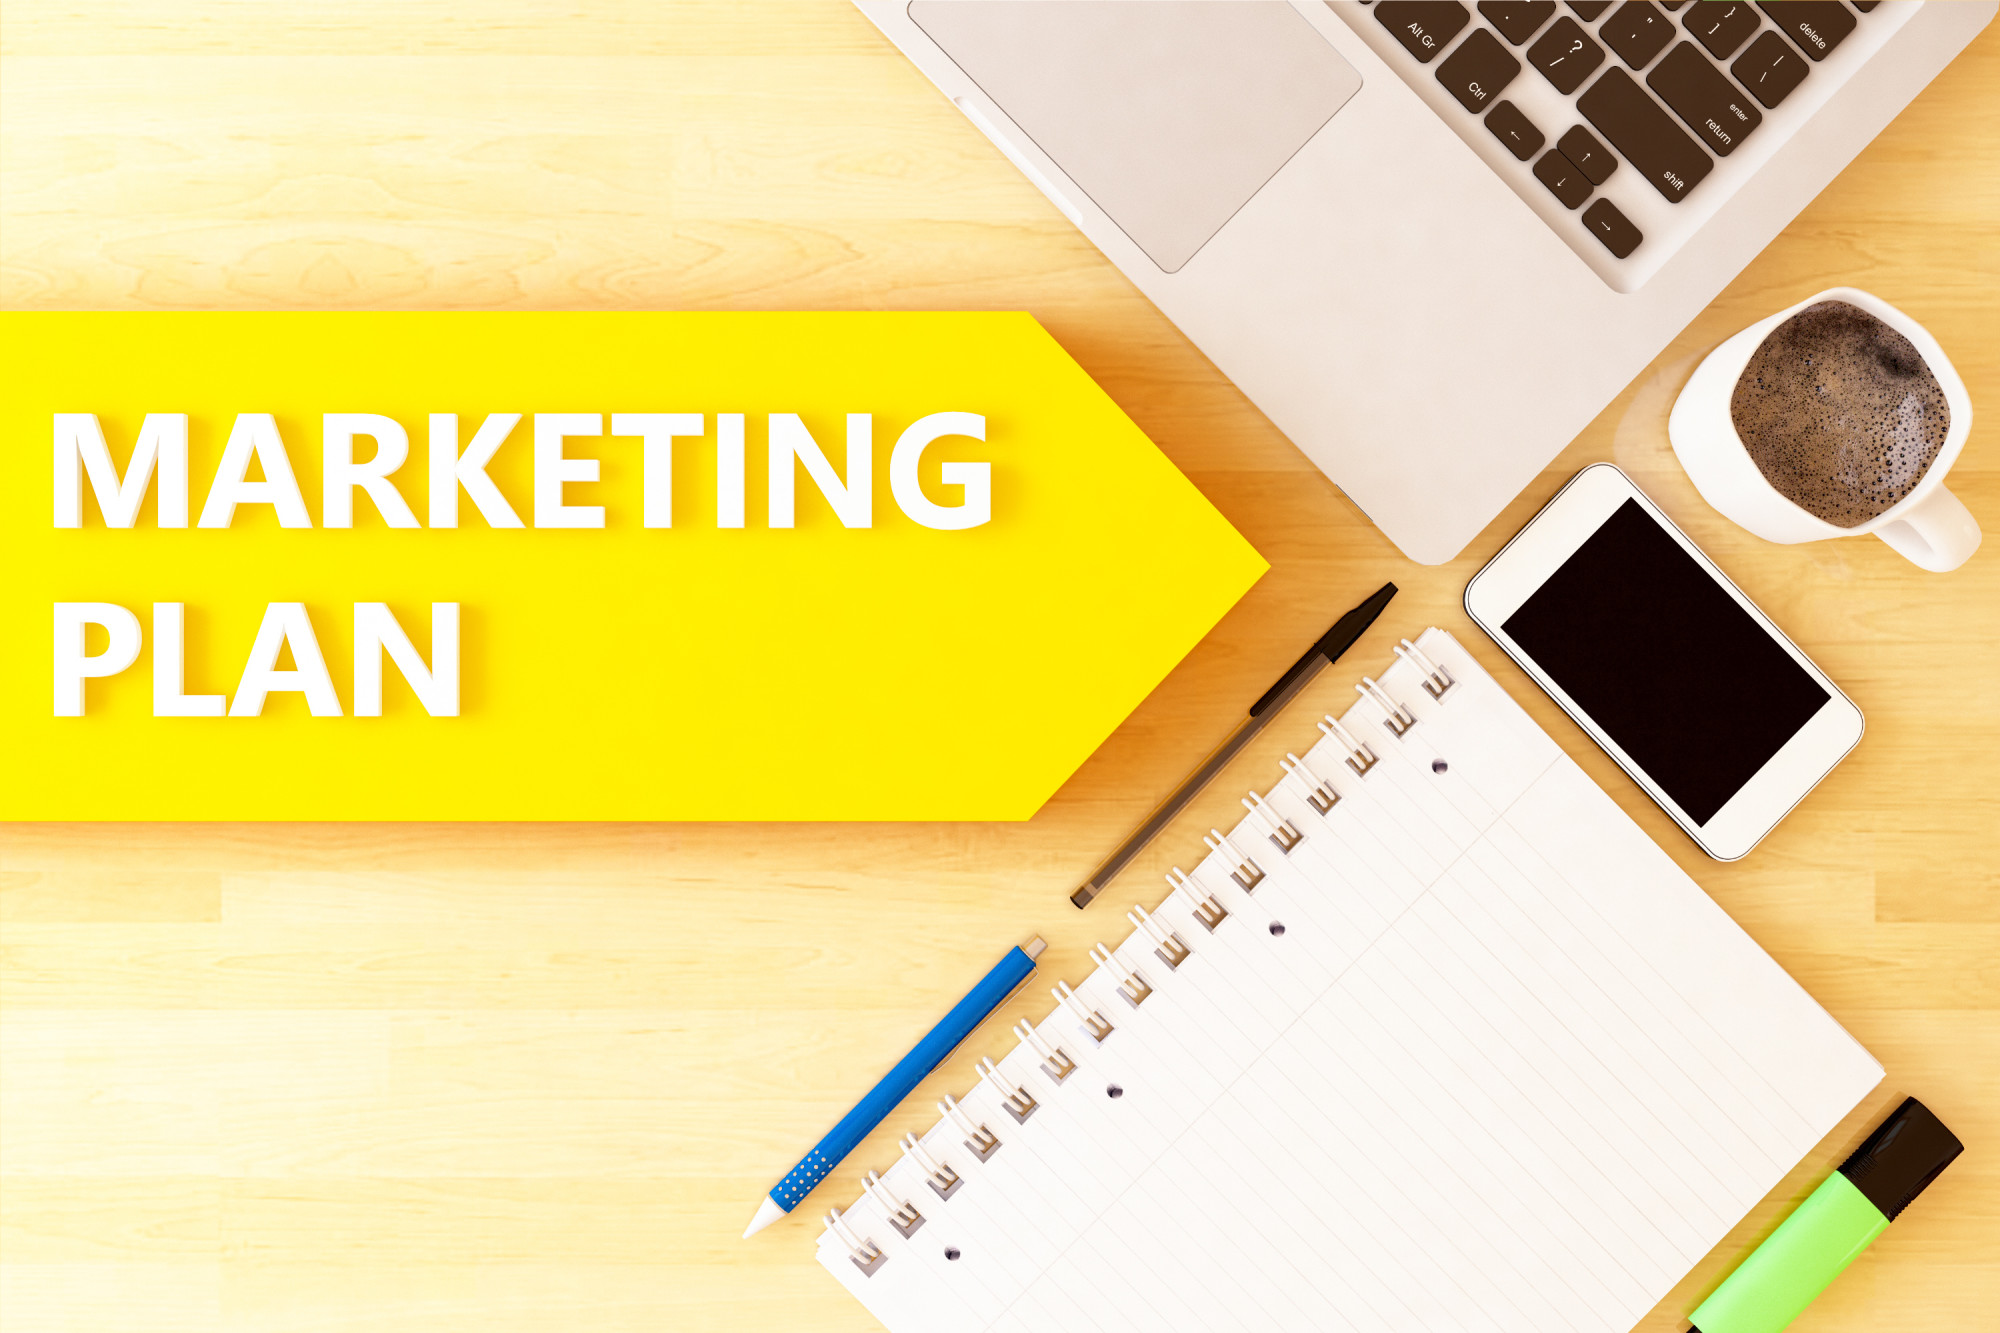 marketing plan text and laptop